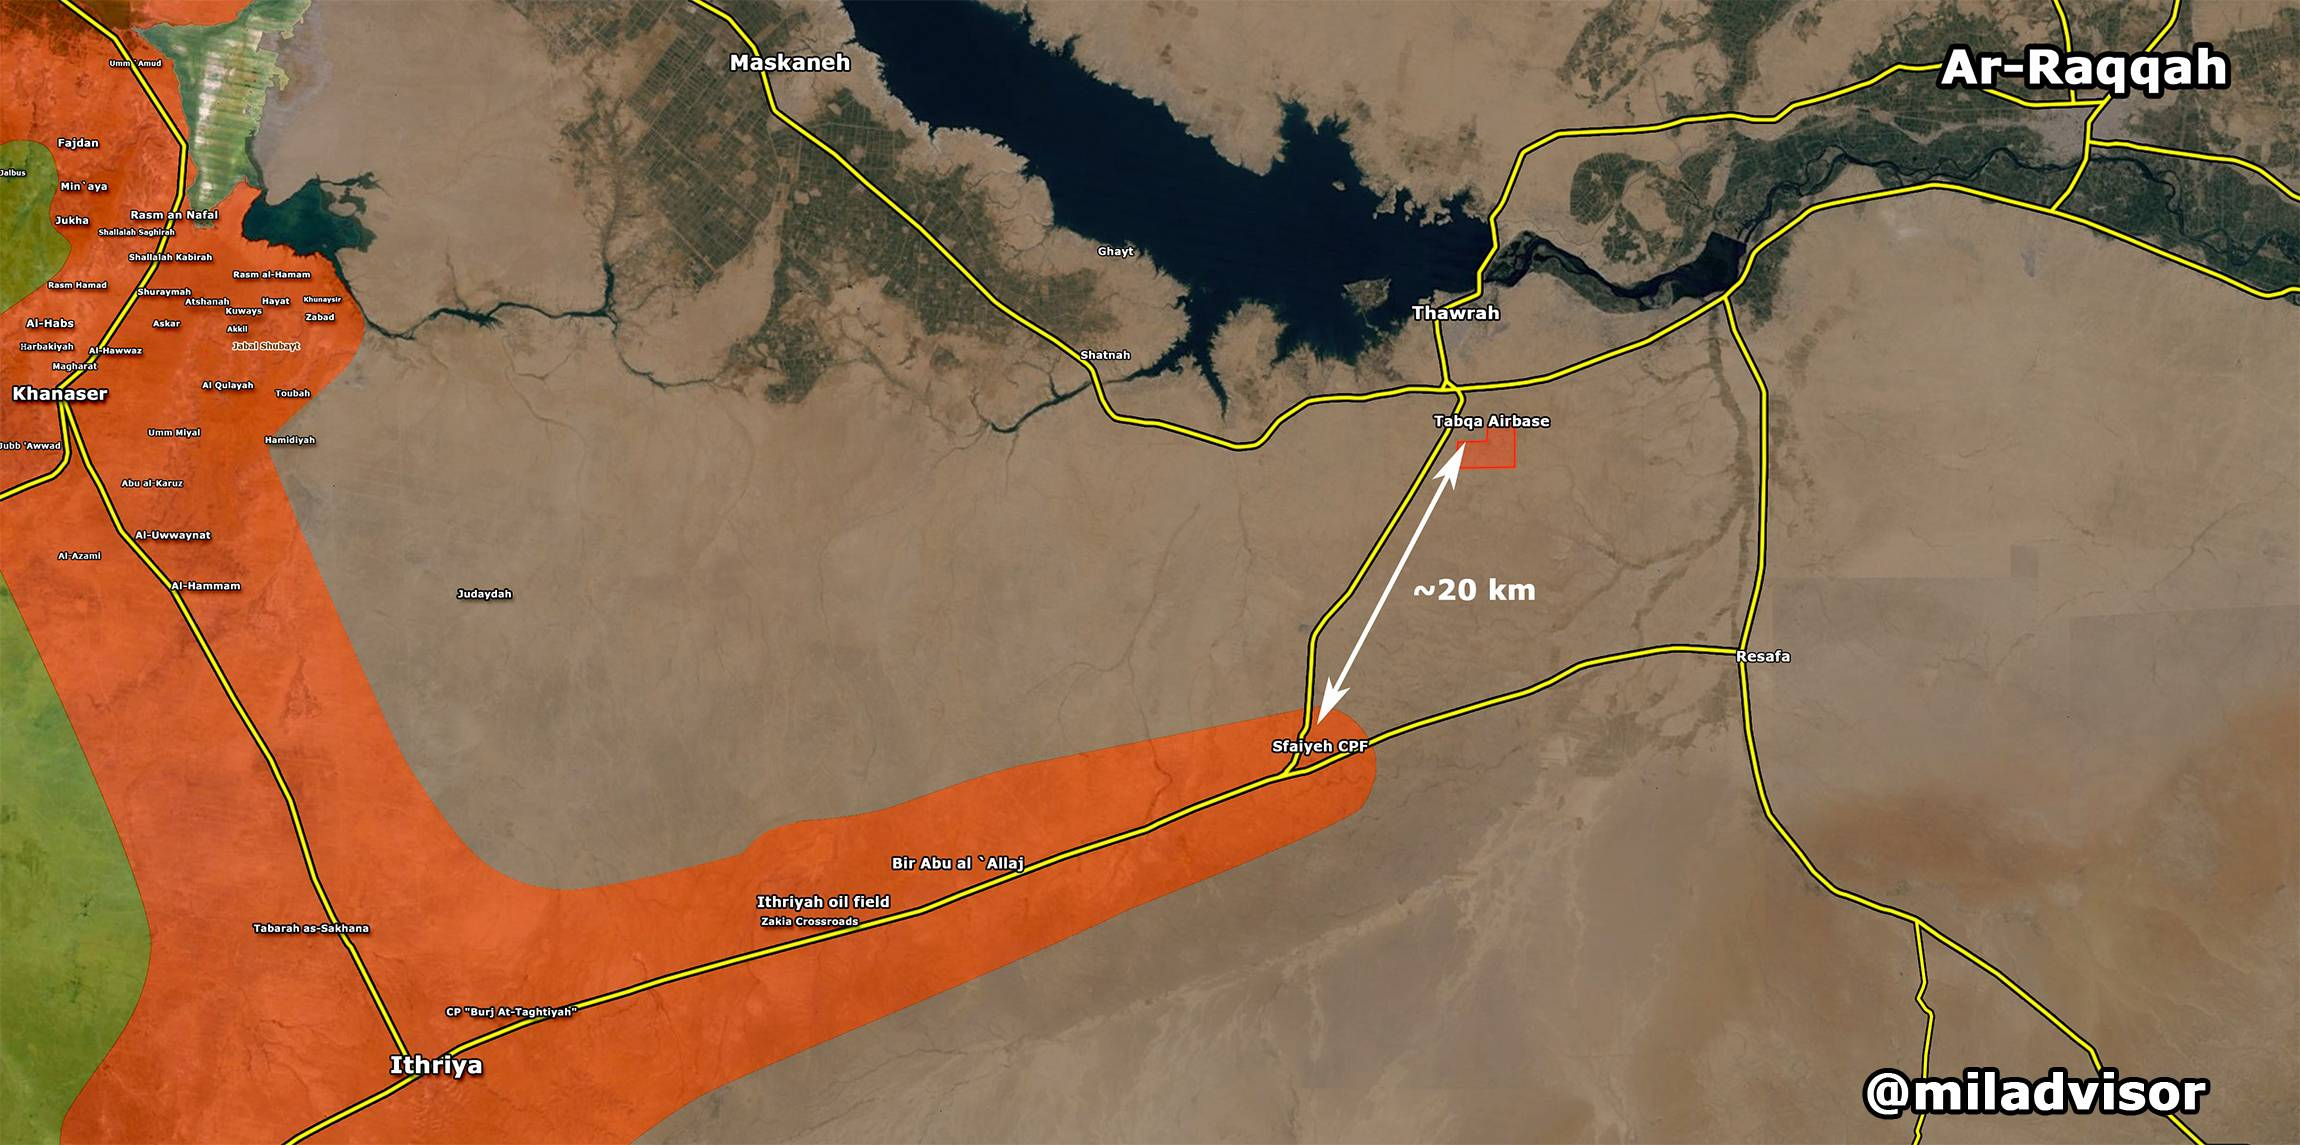 Syrian Army In 20 Km from Tabaqa Military Airport in Raqqa Province